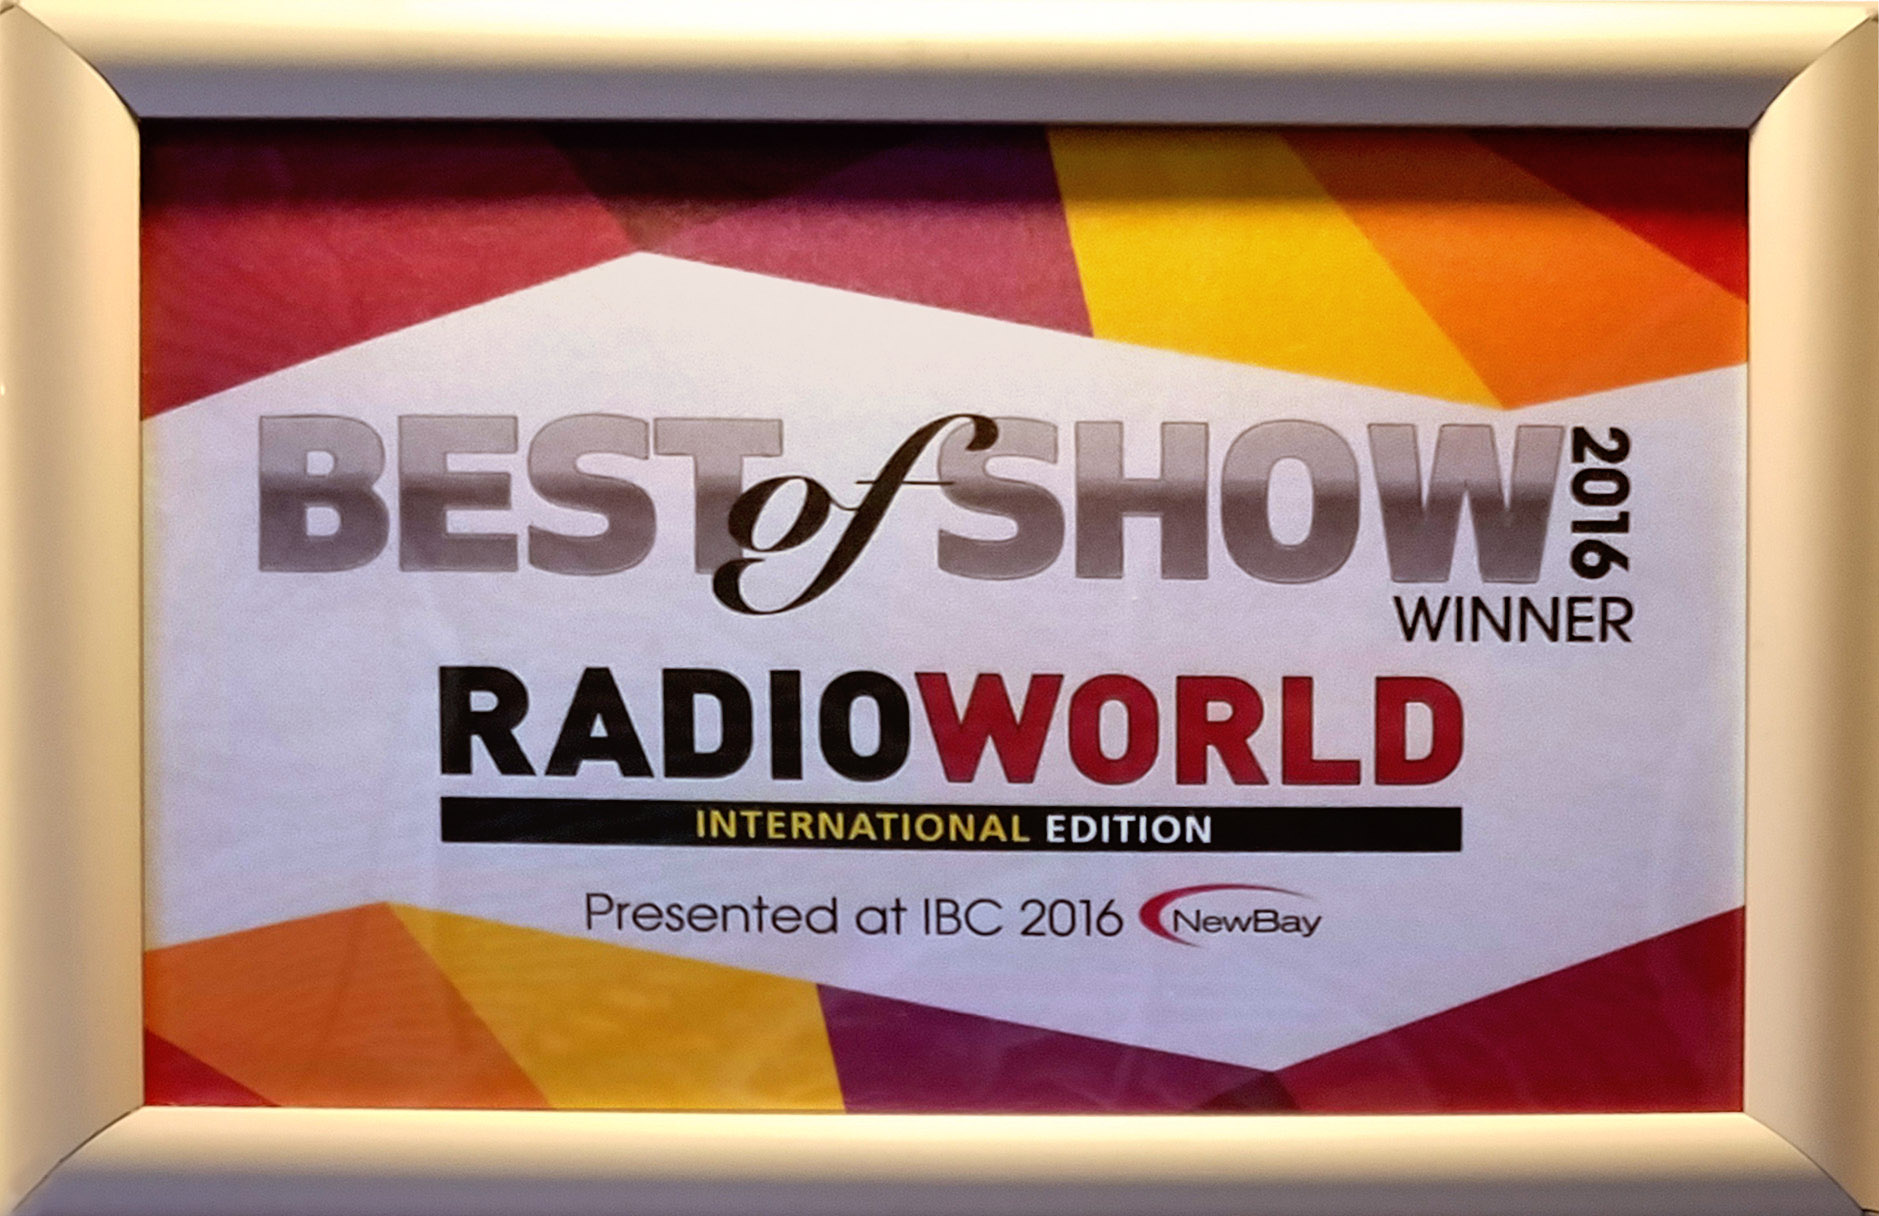 AirAura X1 Wins Best of Show at IBC 2016!